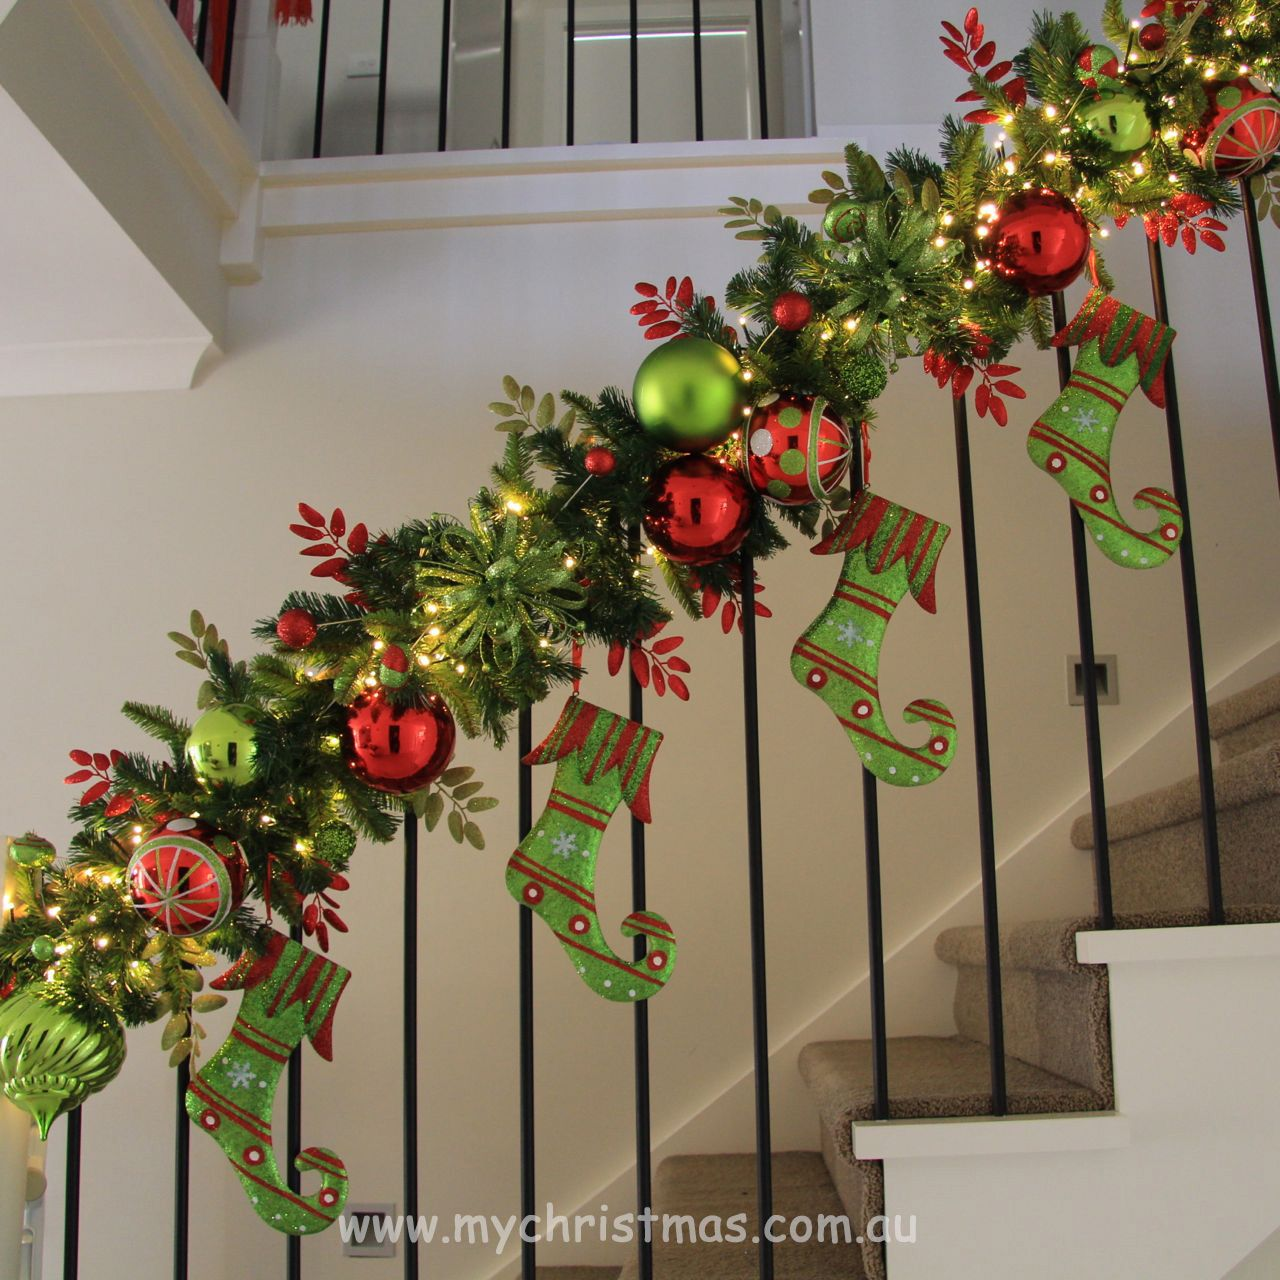 Decorating banisters for christmas with ribbon - Christmas Decorations And Christmas Decorating Ideas For Your Staircase Banister Is As Easy As It Can